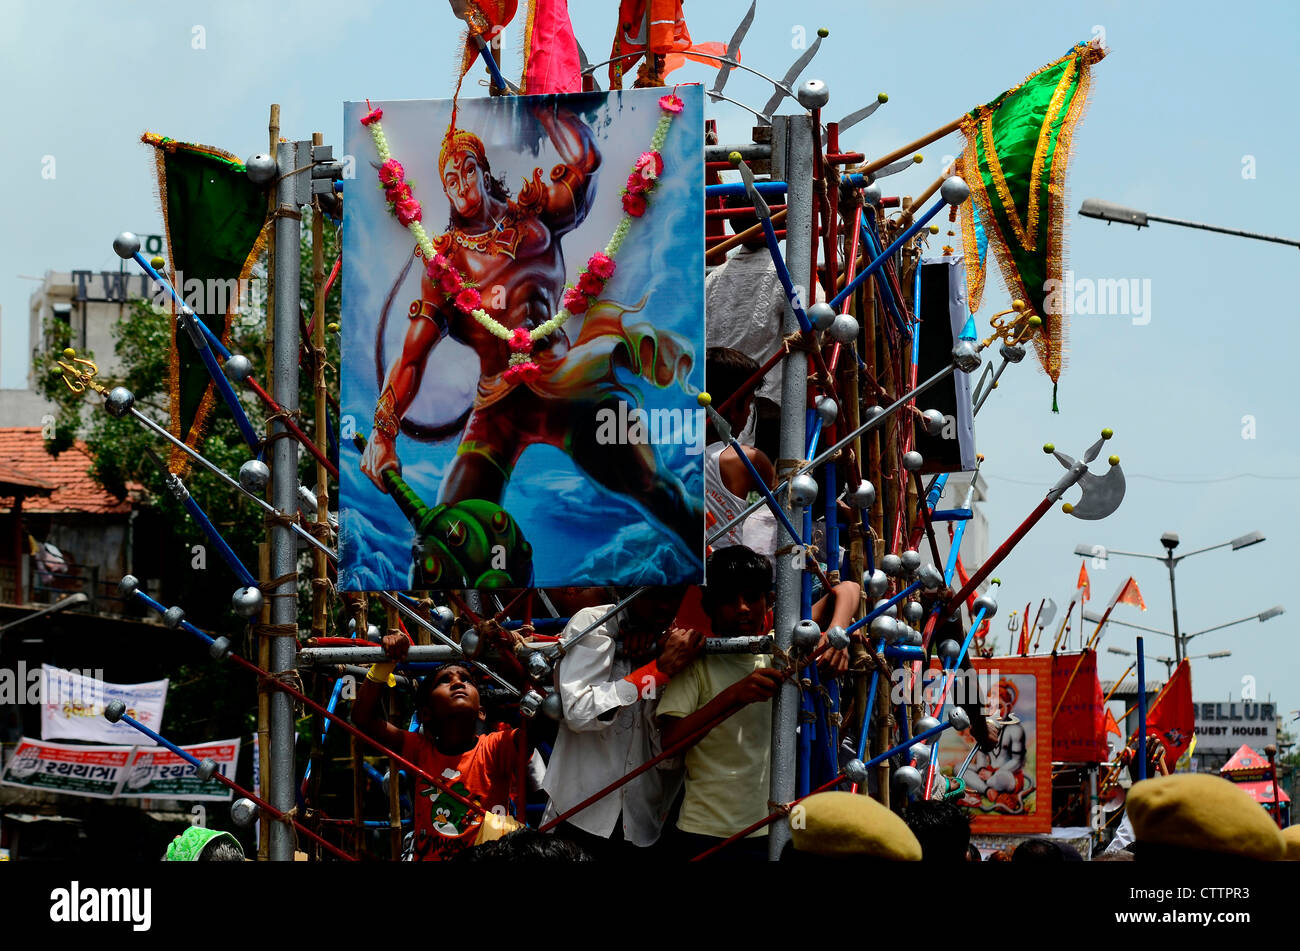 A religious float in Ahmedabad, Gujarat, india during Rathya yatra - Stock Image